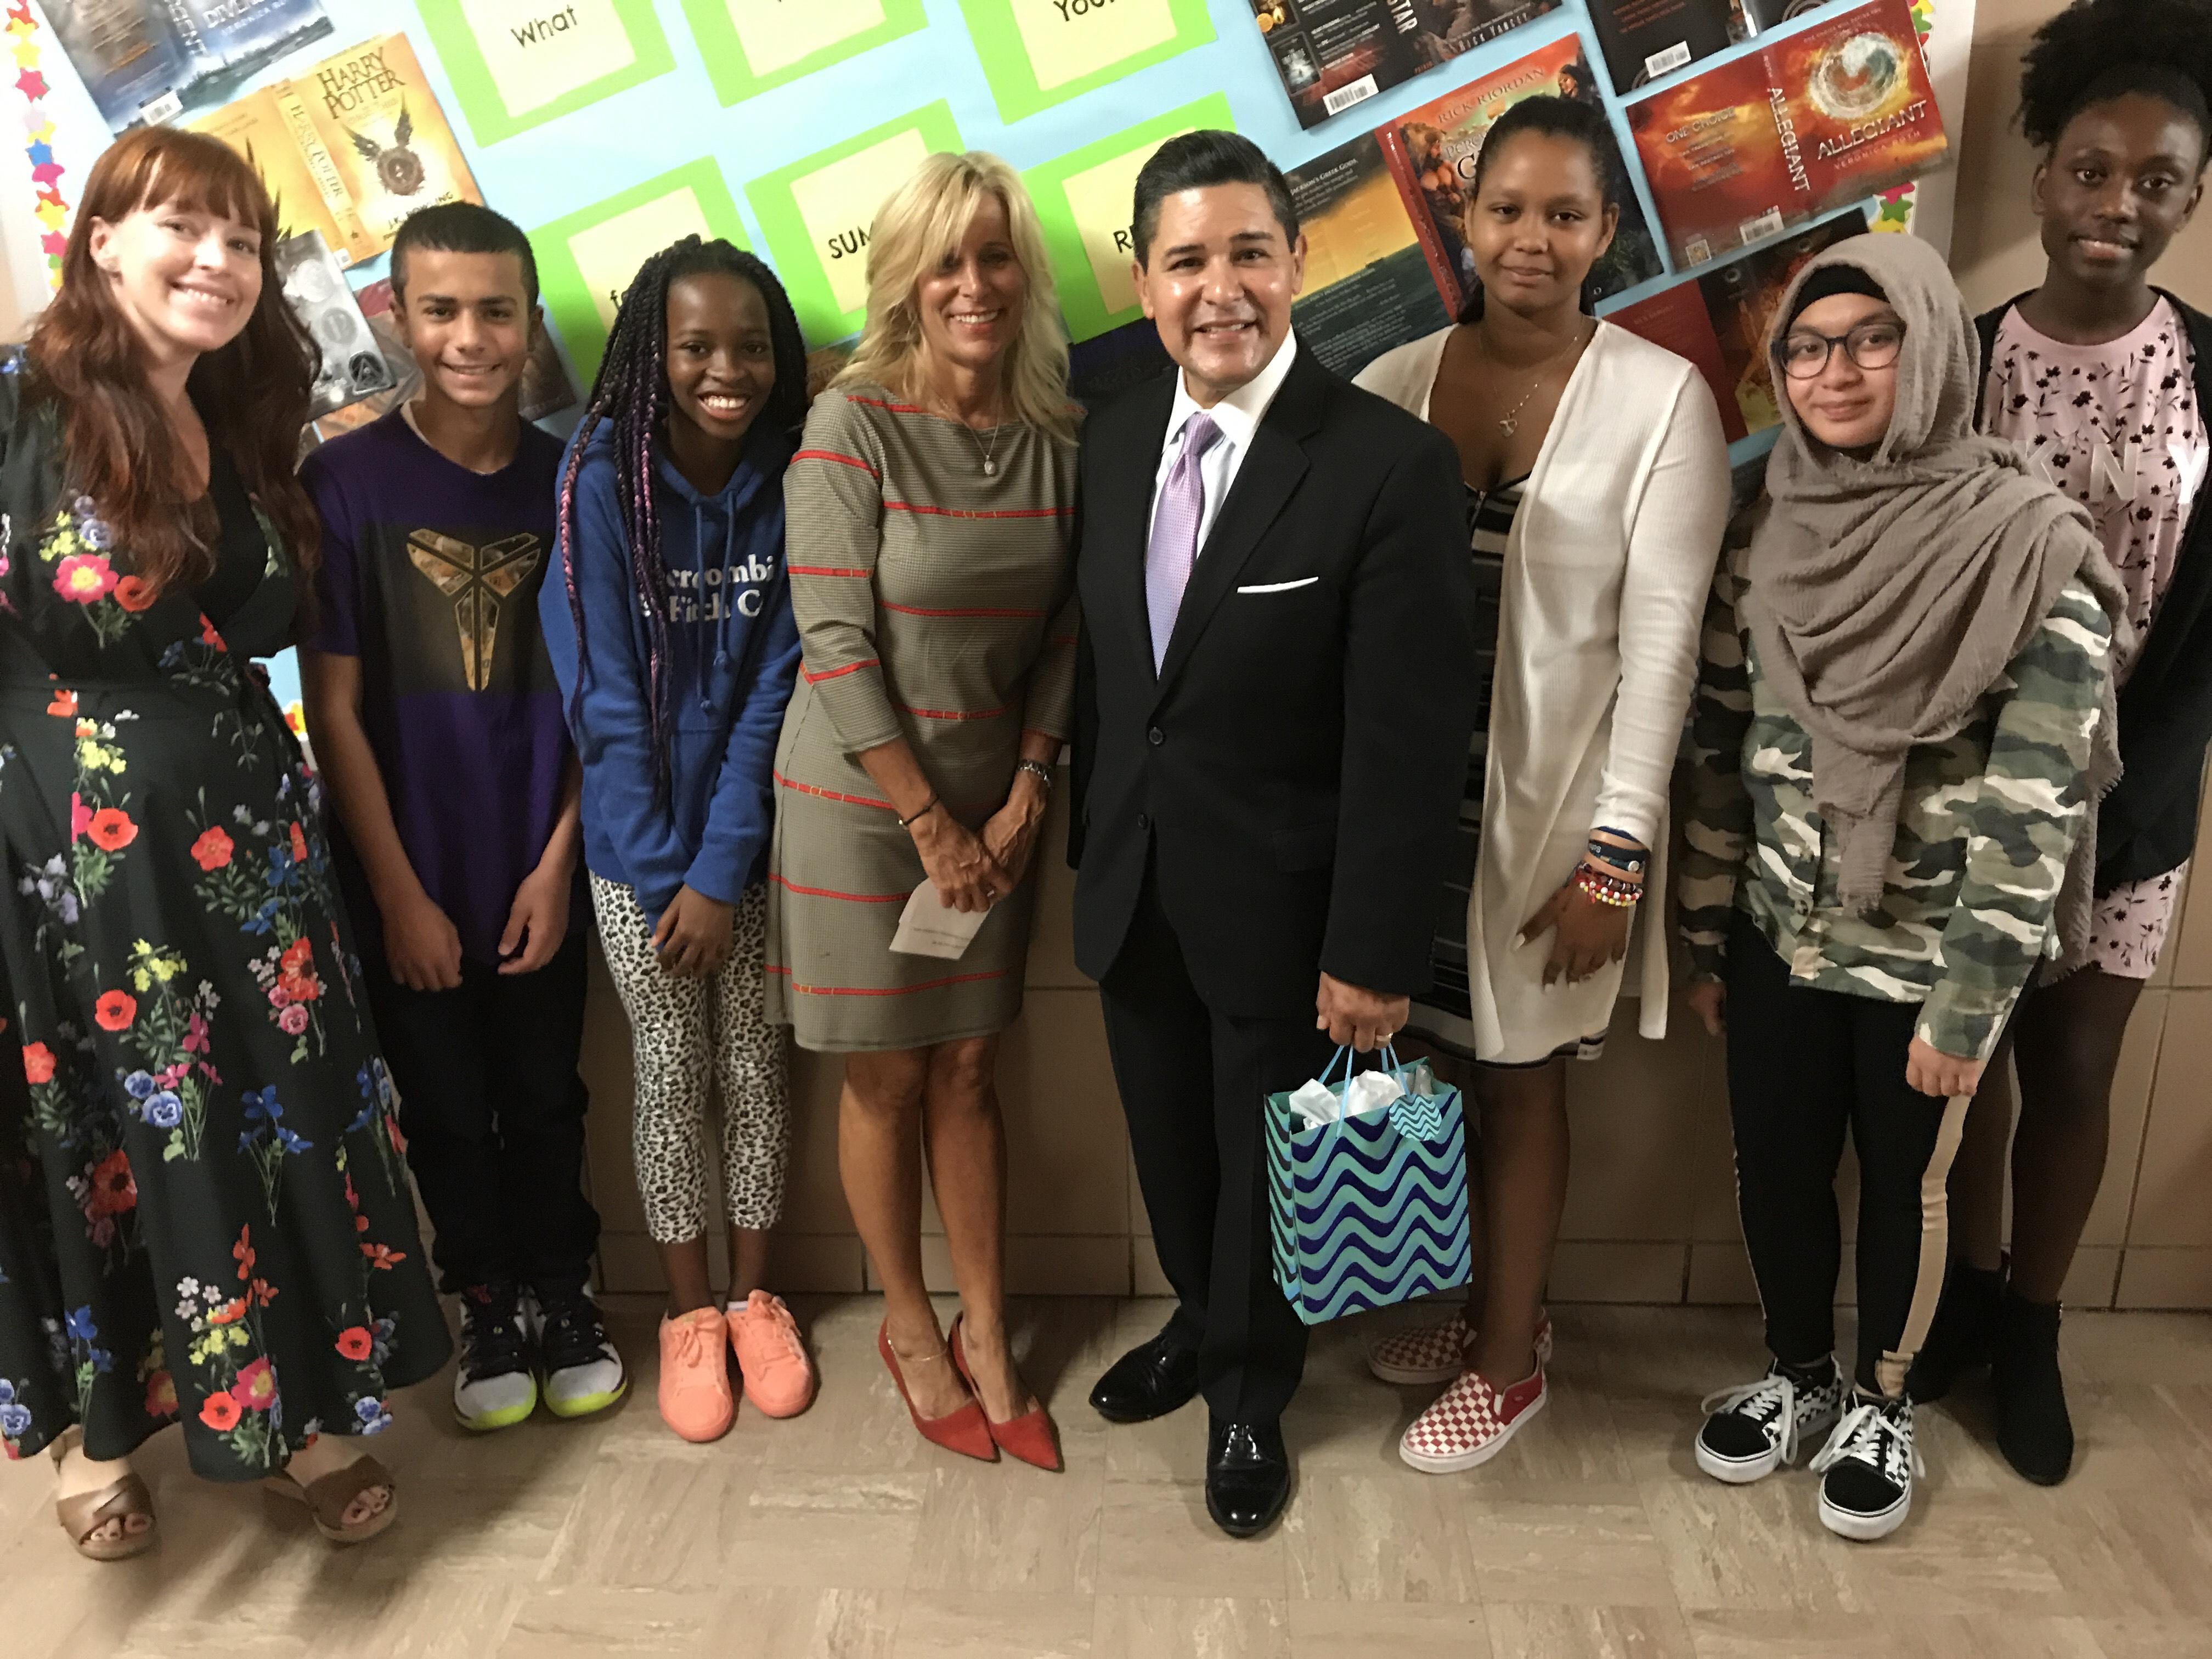 Chancellor Carranza, Ailene Mitchell, Kyra Wolfe and students from MS 88